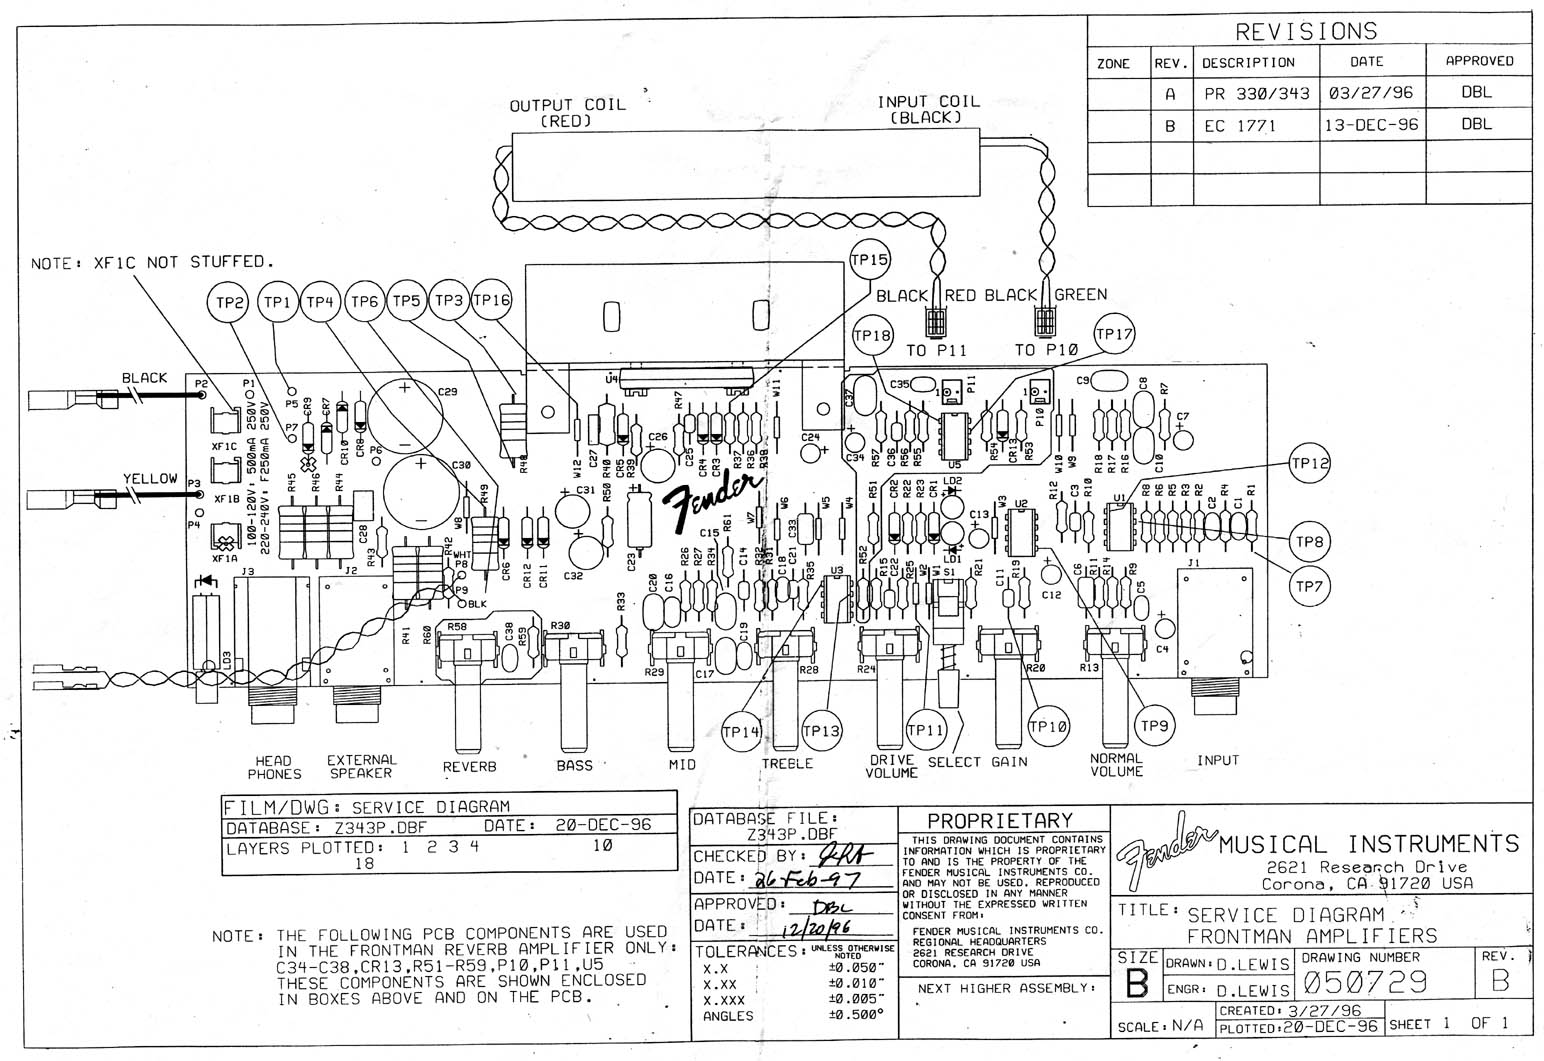 Ibanez Gsr200 Wiring Diagram 28 Images Free Download Gsr205 Frontman L Diagrams 599428 Megaflow Megaflo Unvented At